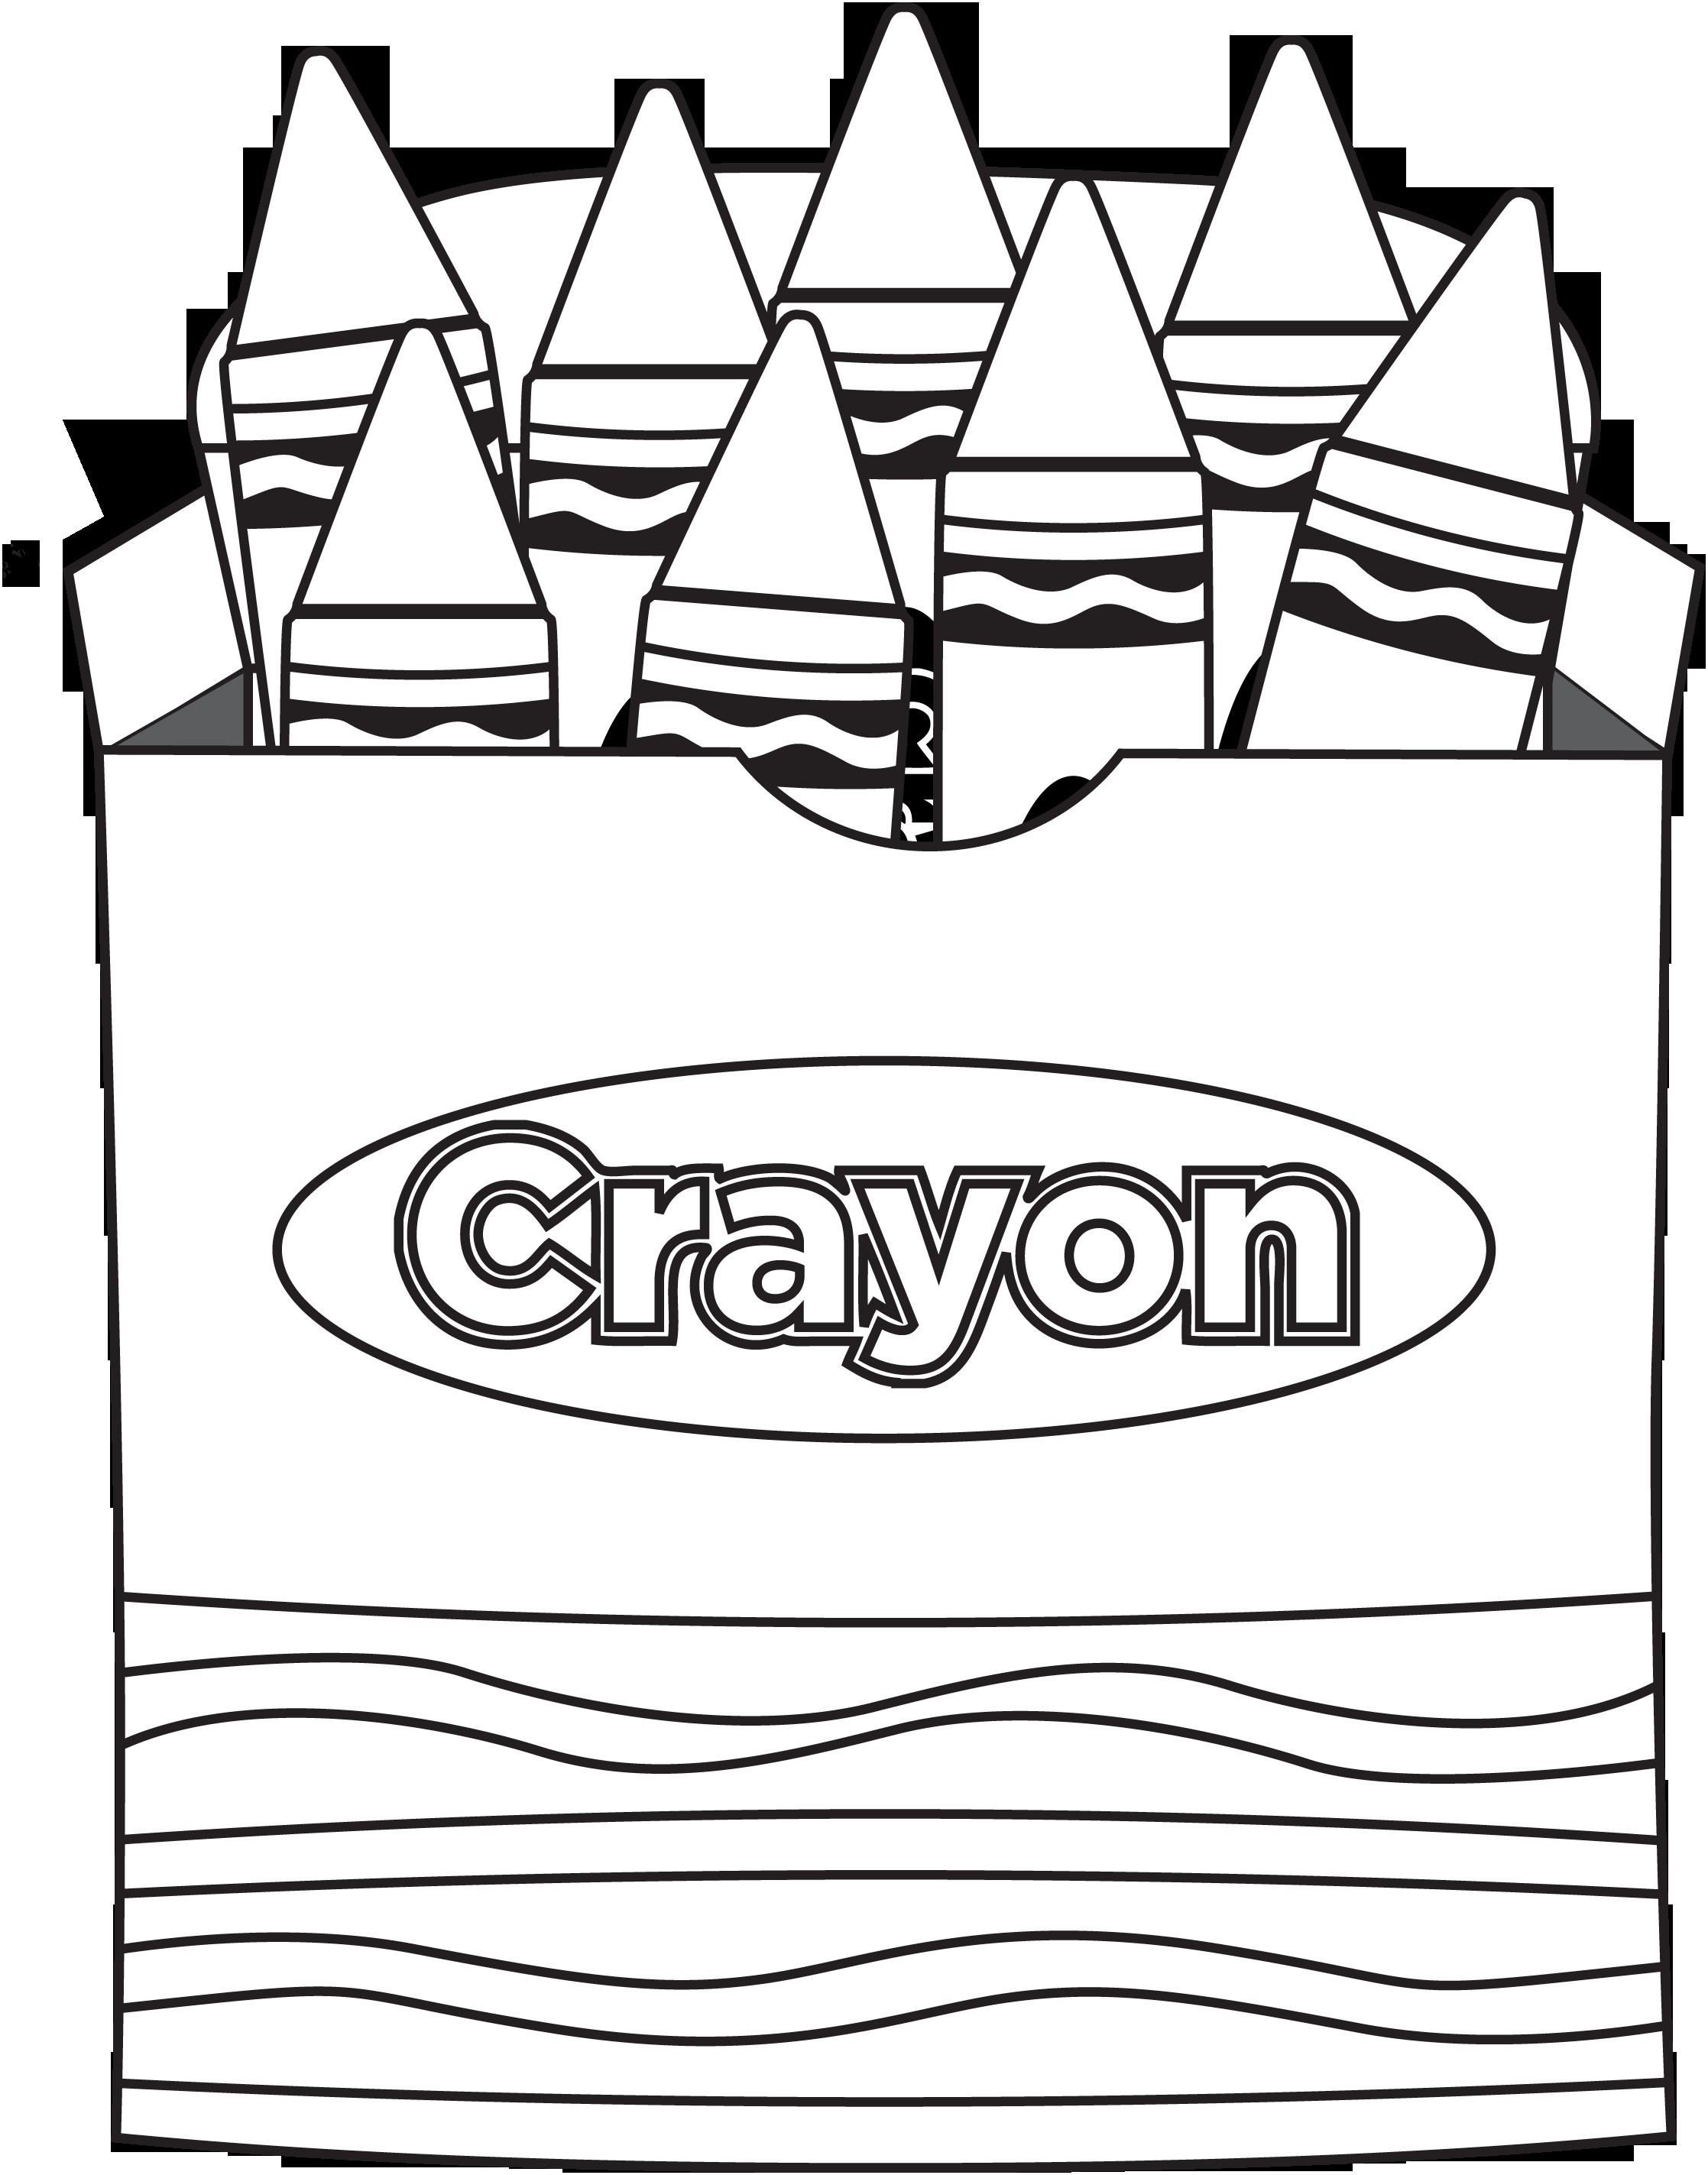 Crayon Coloring Pages  Color My World Valentine Printable